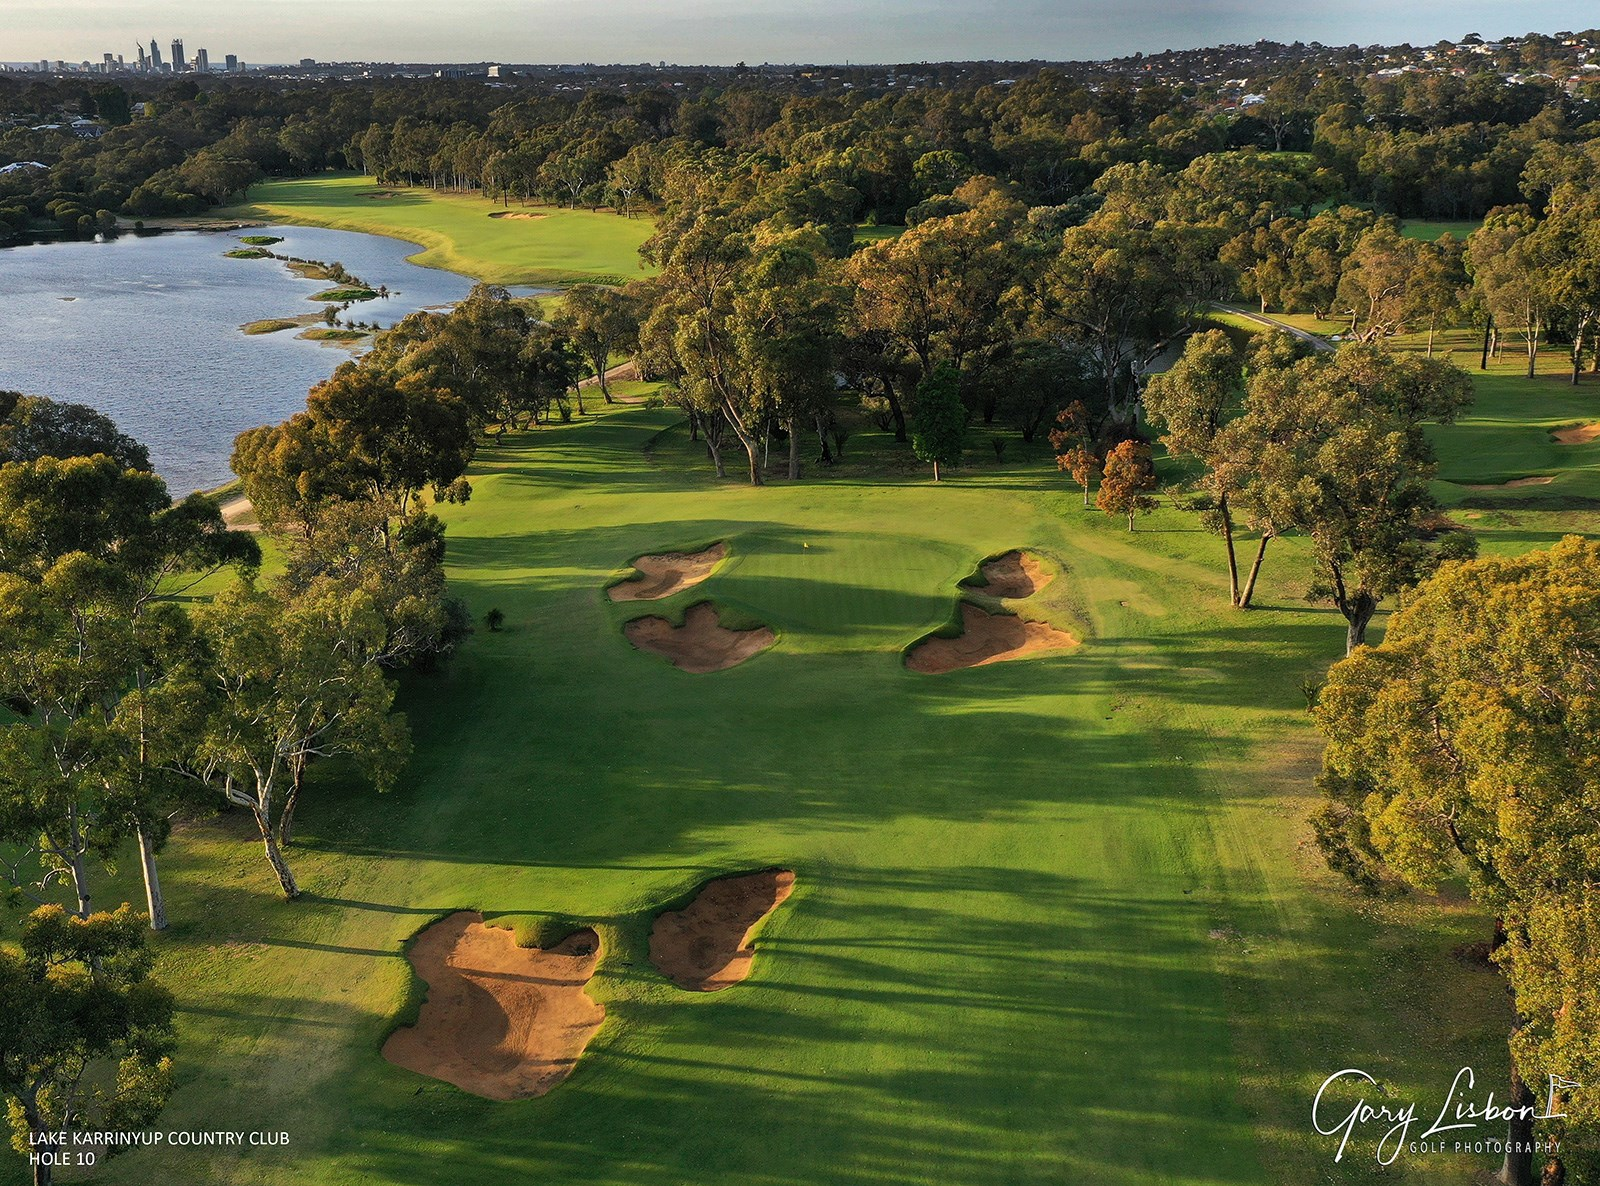 Lake Karrinyup Country Club Hole 10